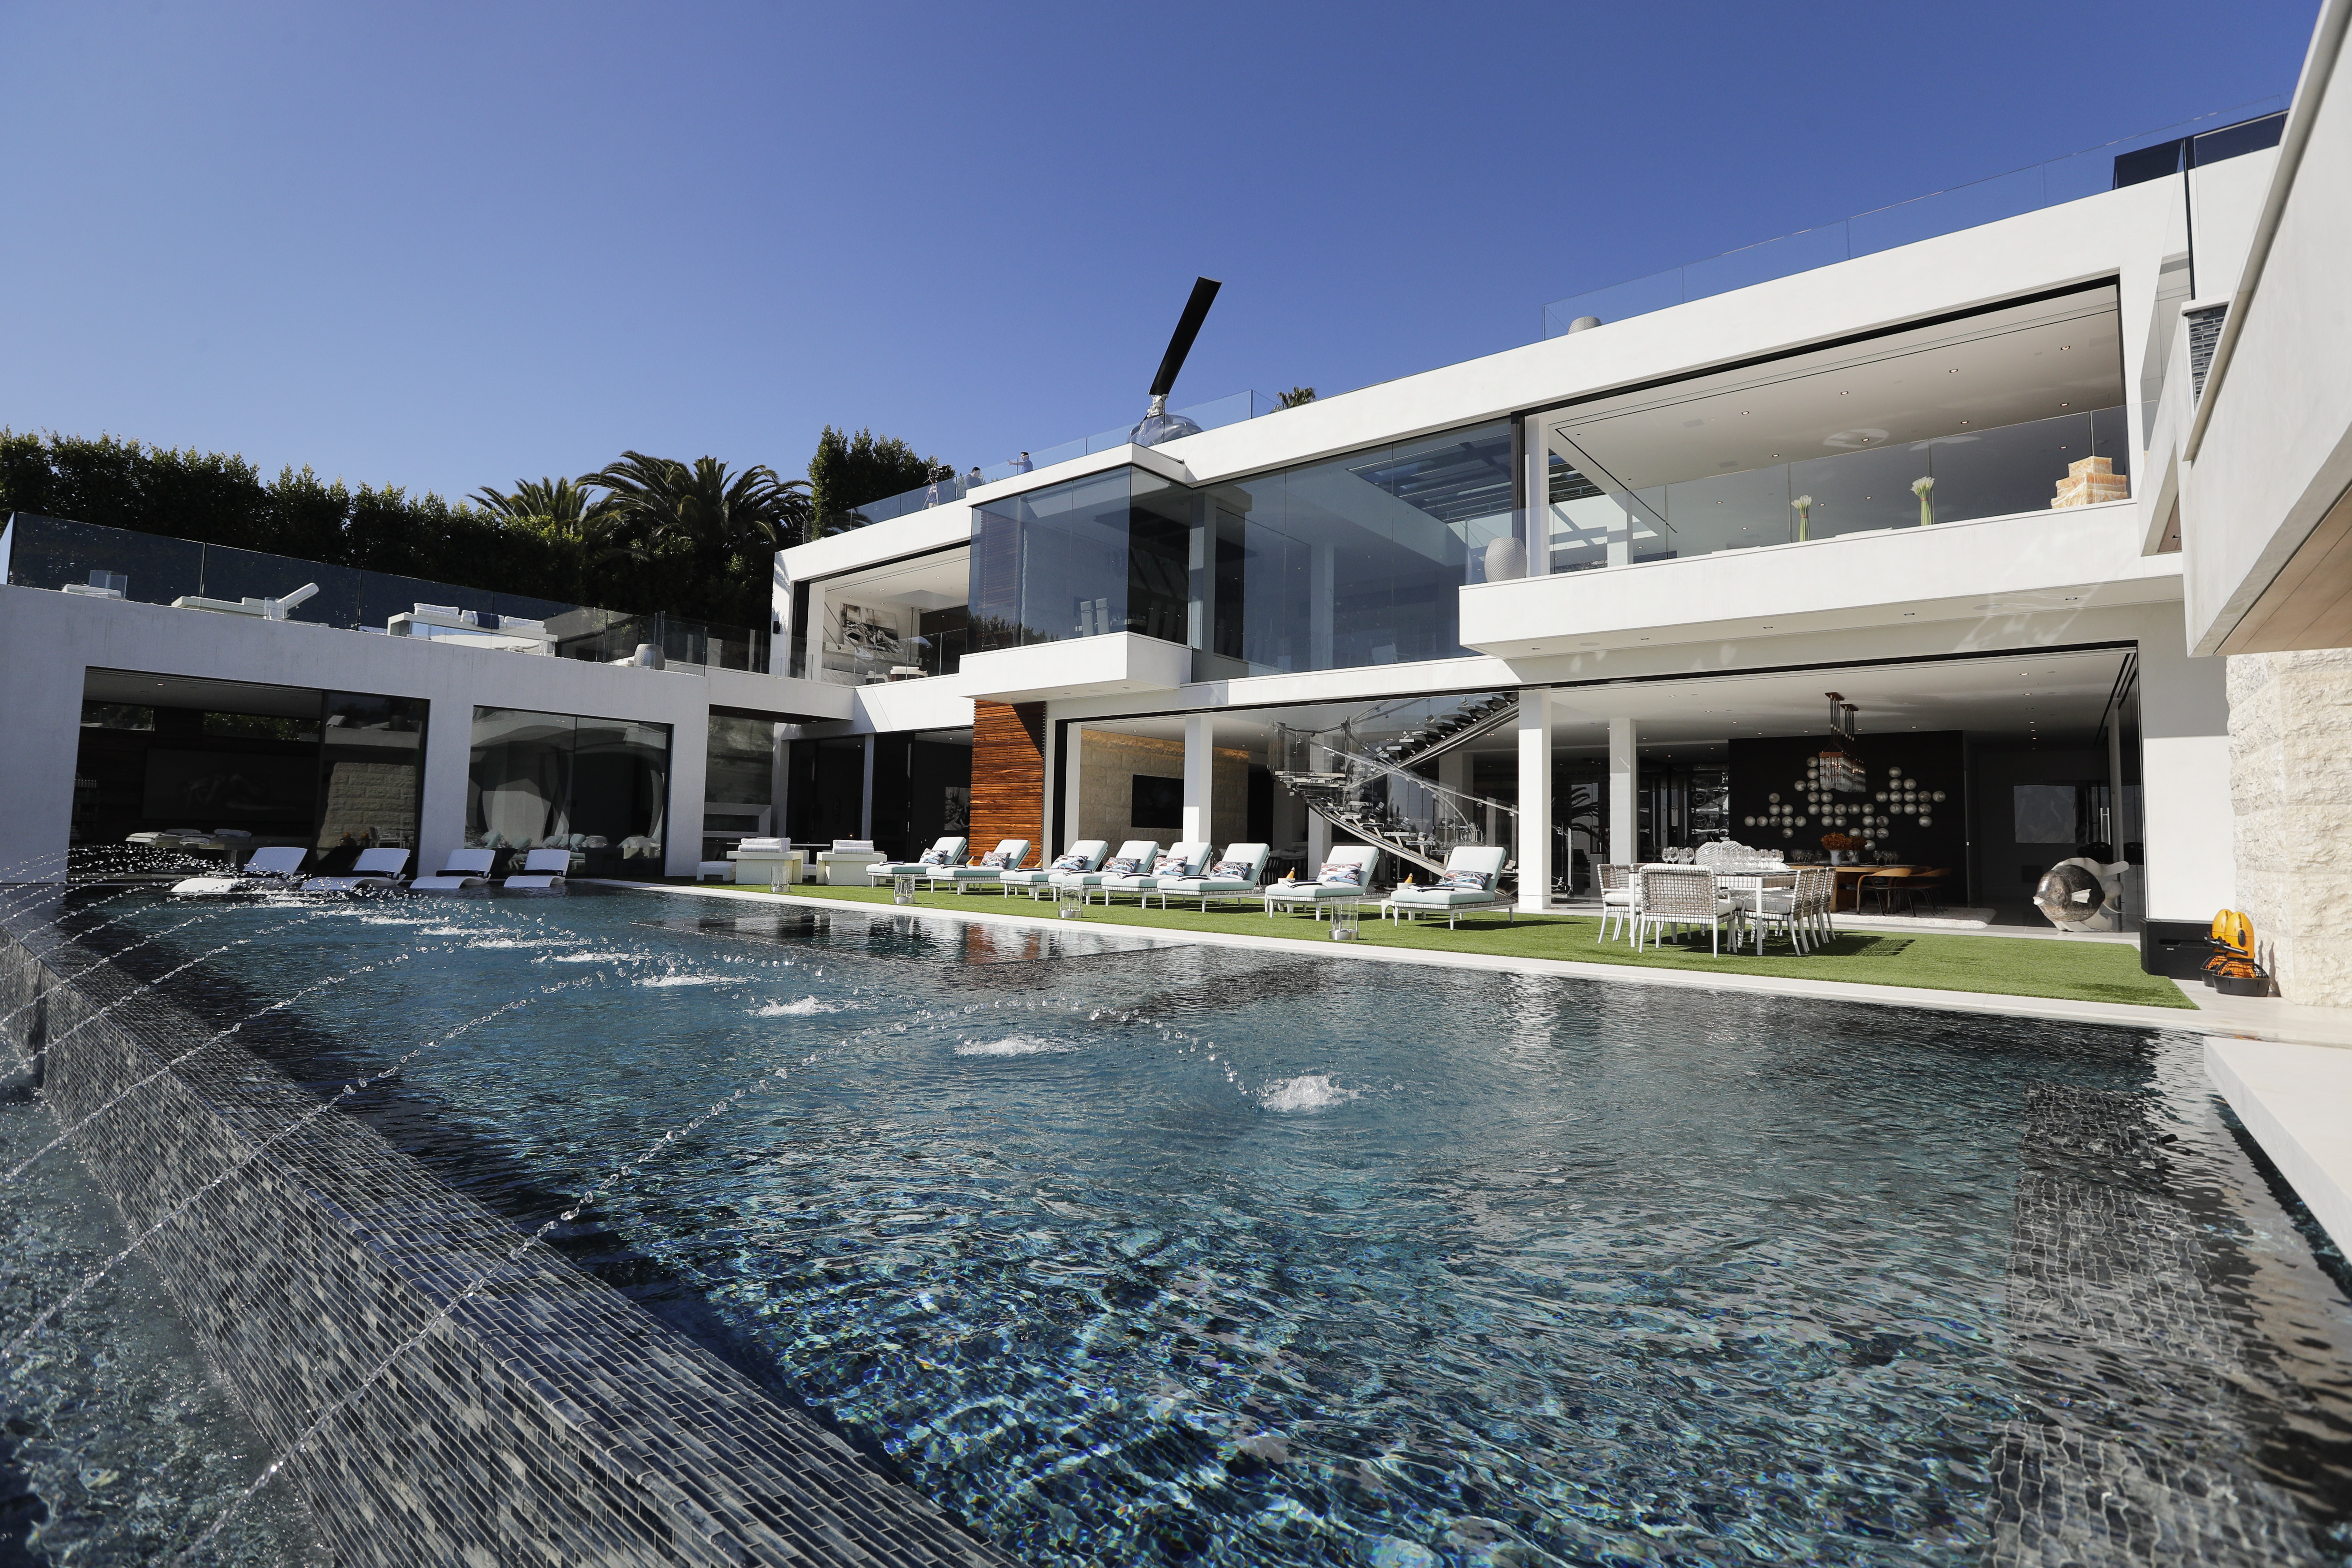 An 85-foot infinity swimming pool at a $250 million mansion in the Bel-Air area of Los Angeles. (AP Photo/Jae C. Hong)